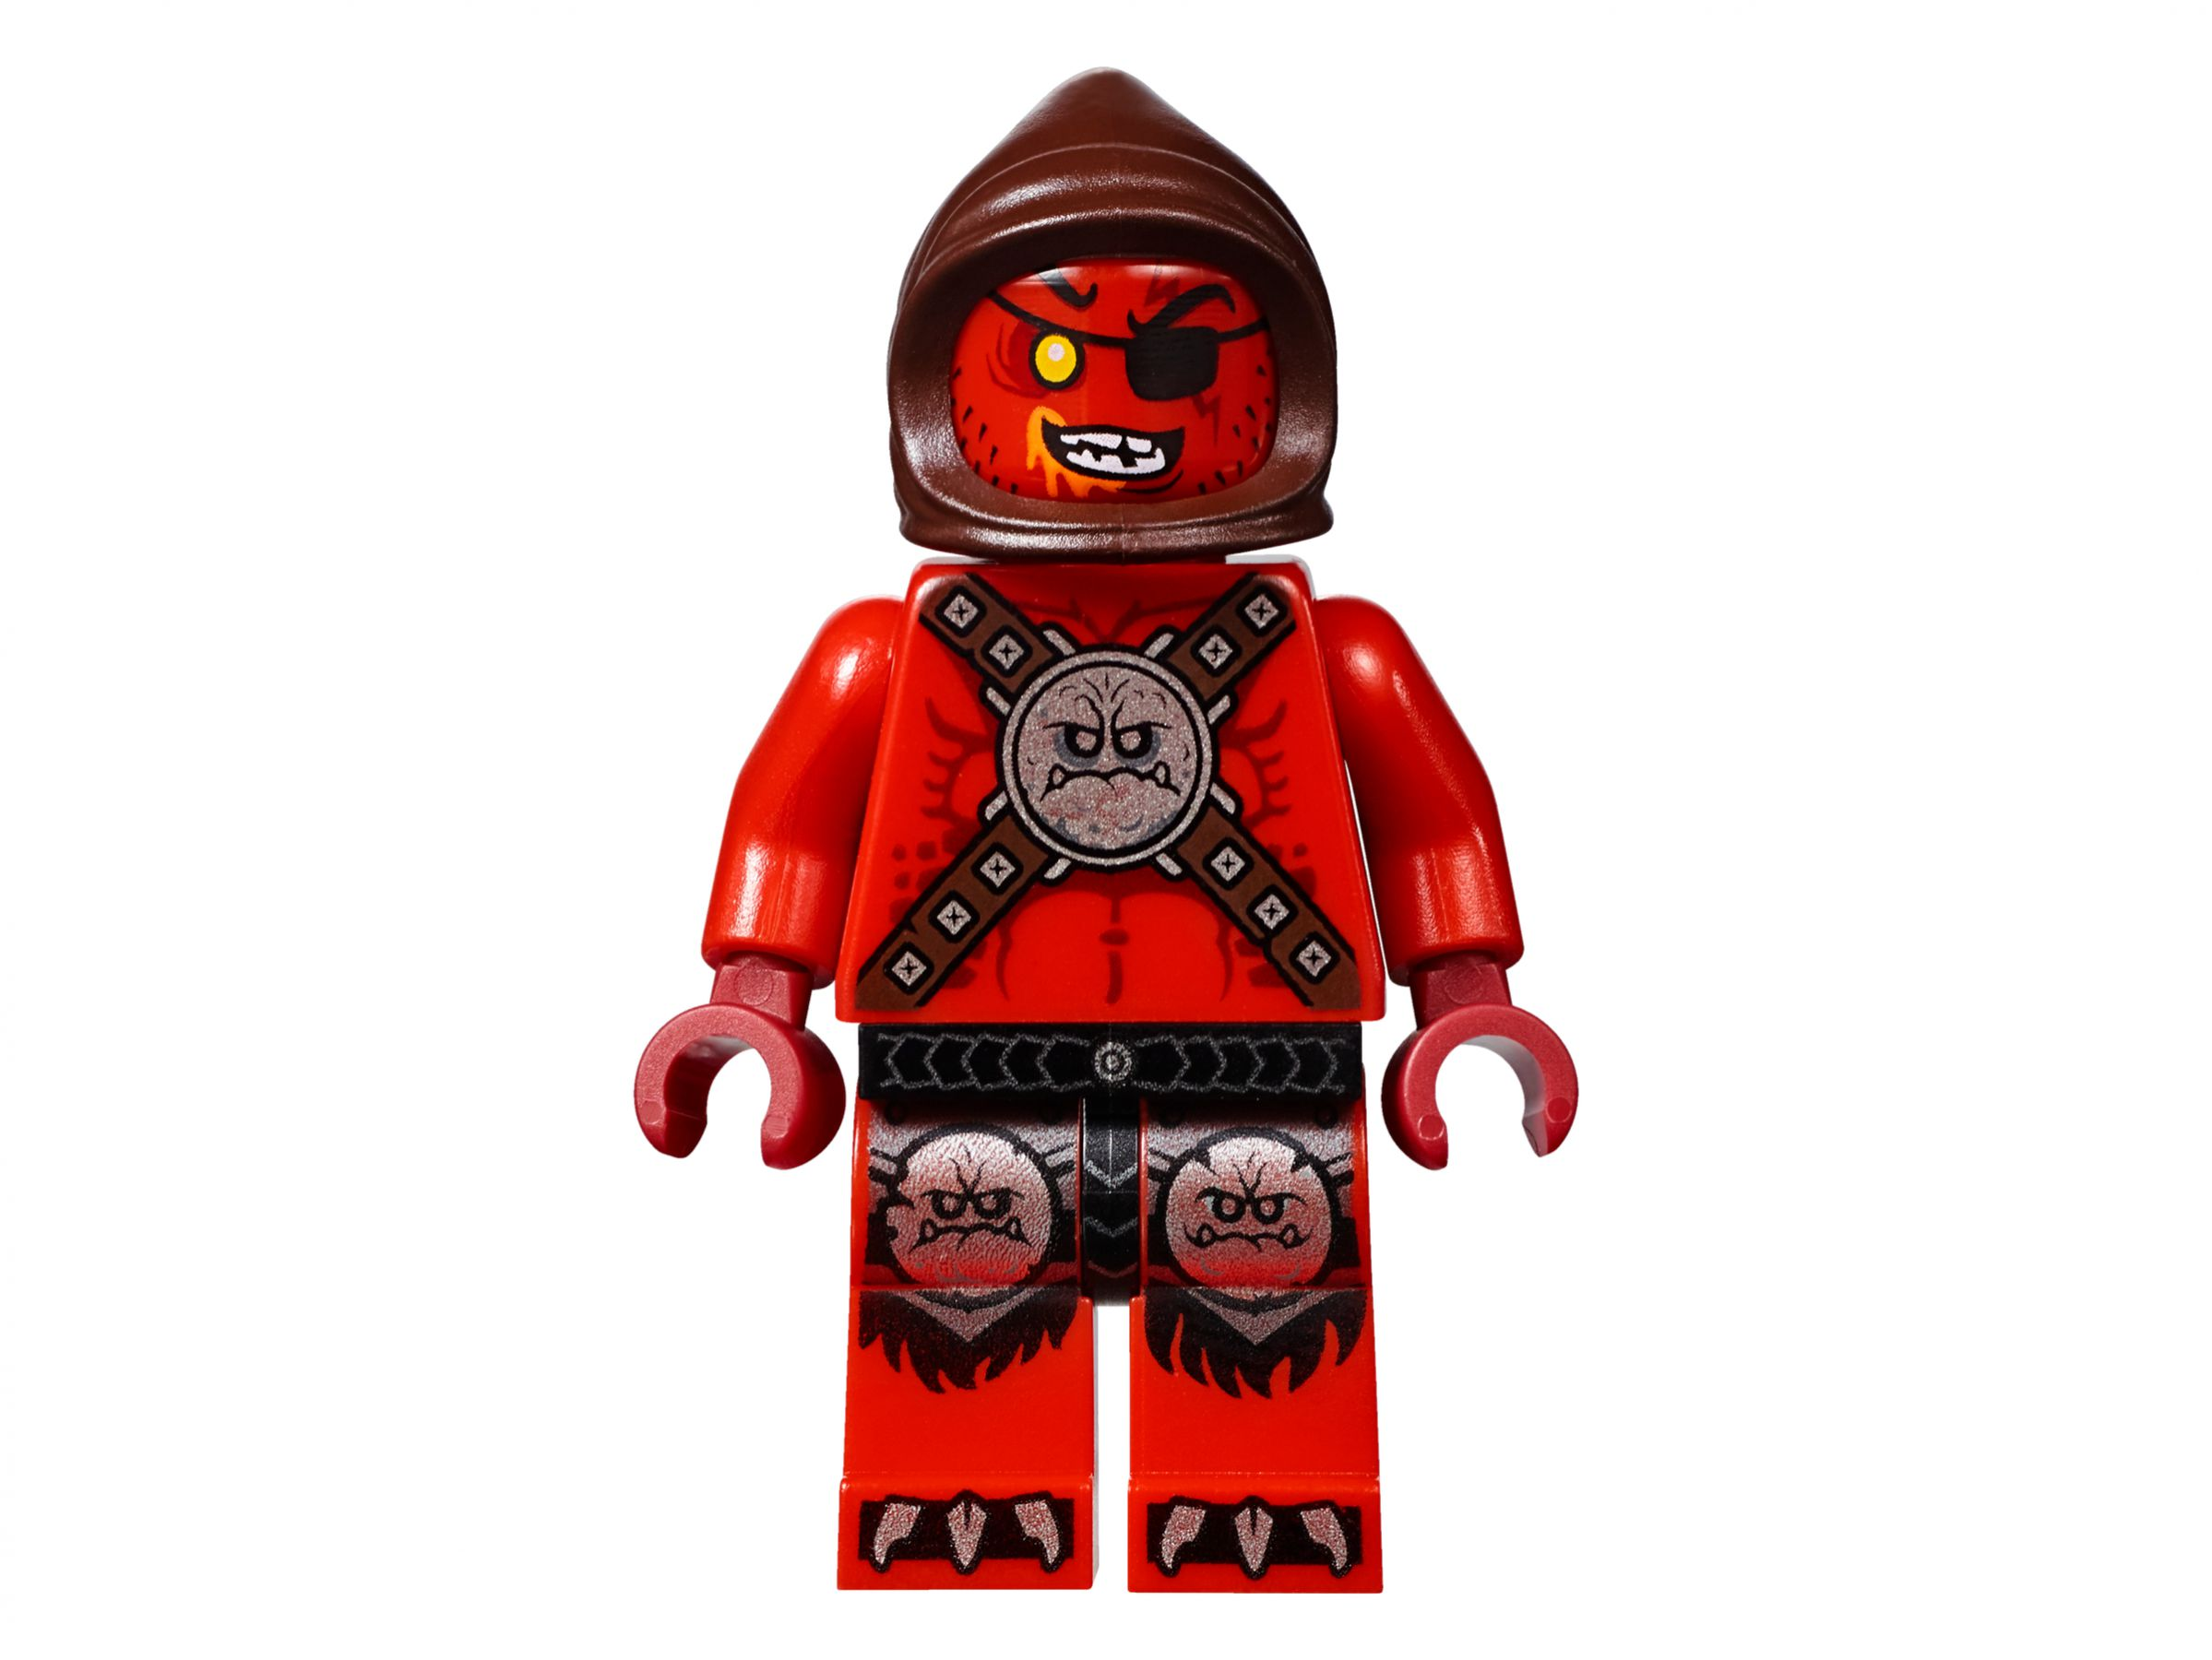 LEGO Nexo Knights 70334 Ultimativer Monster-Meister LEGO_70334_alt5.jpg